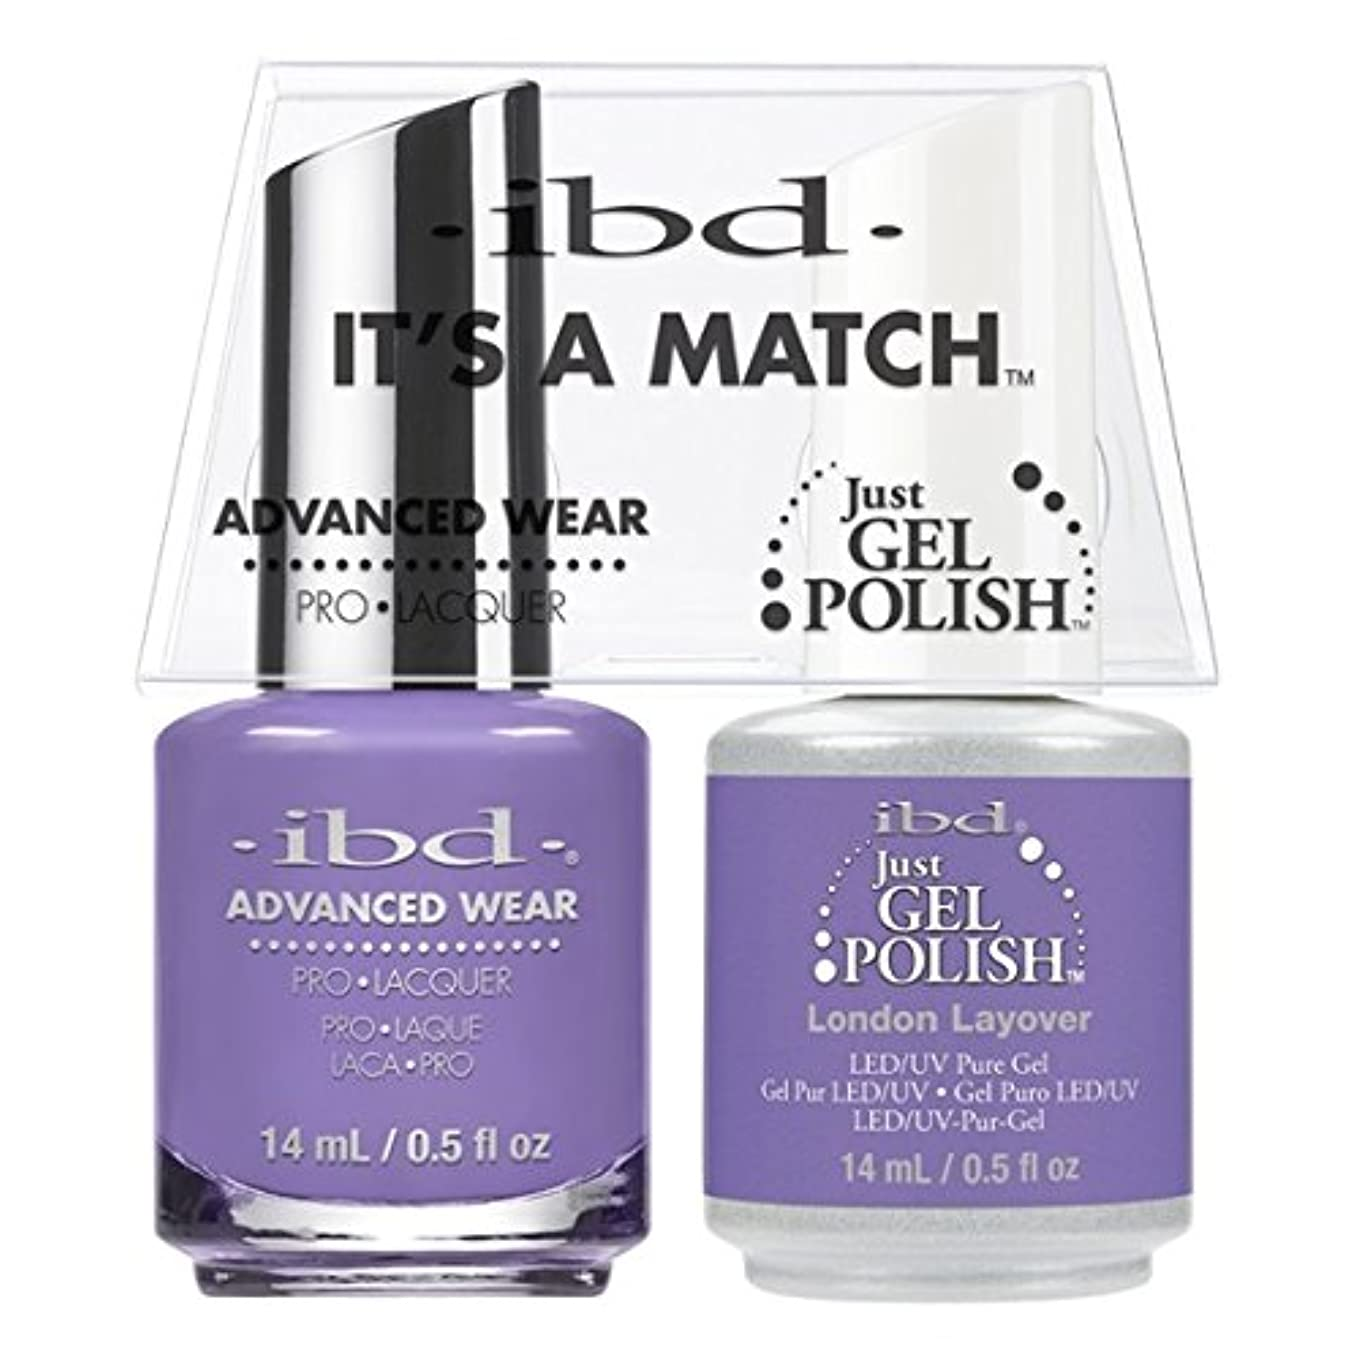 ibd - It's A Match -Duo Pack- Destination Collection - London Layover - 14 mL / 0.5 oz Each